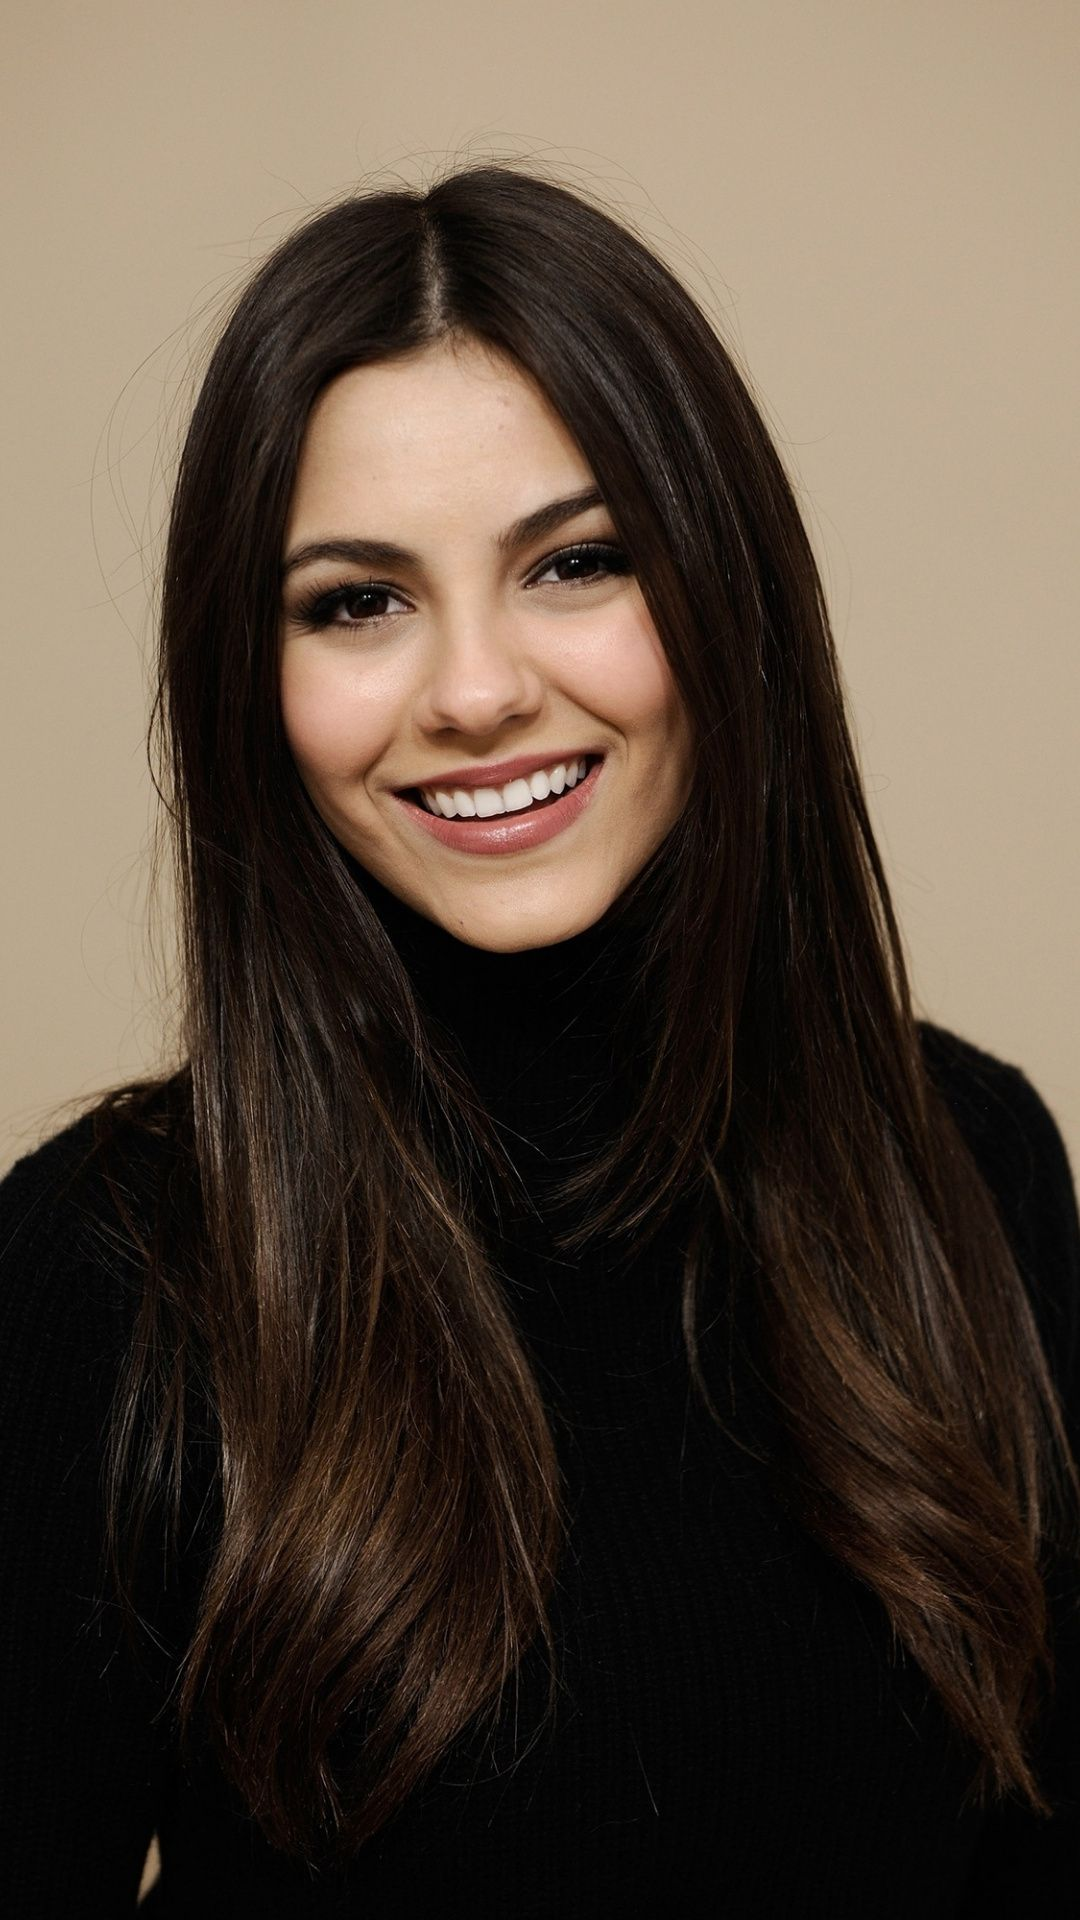 1080x1920 - Victoria Justice Wallpapers 32